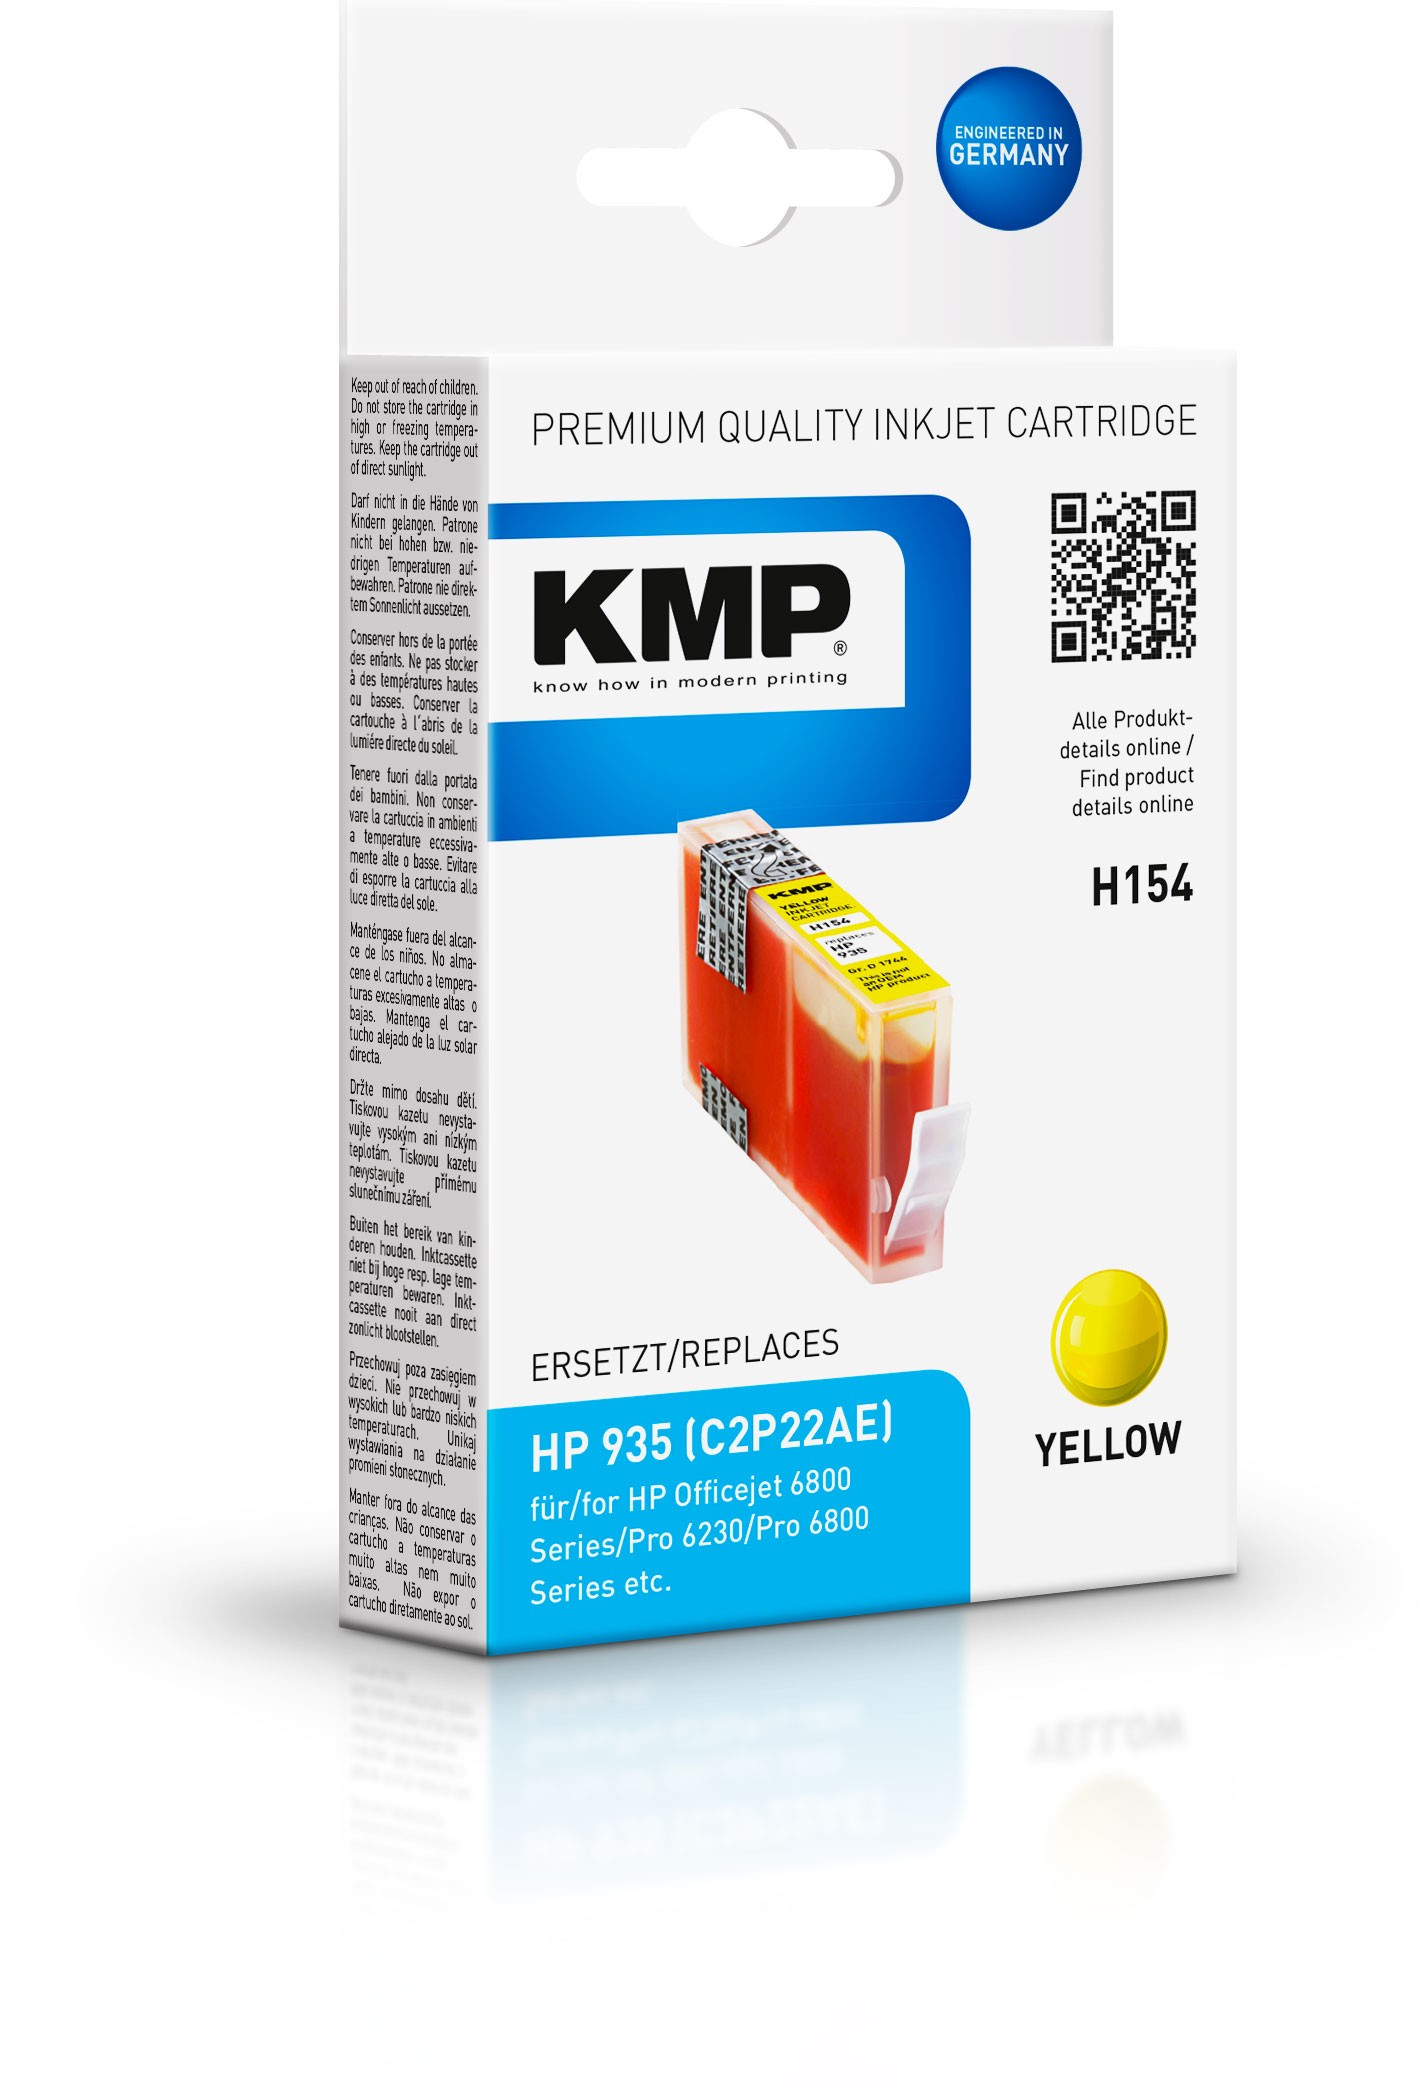 KMP Patrone H154 für C2P22AE HP935 Officejet 6800 etc. yellow